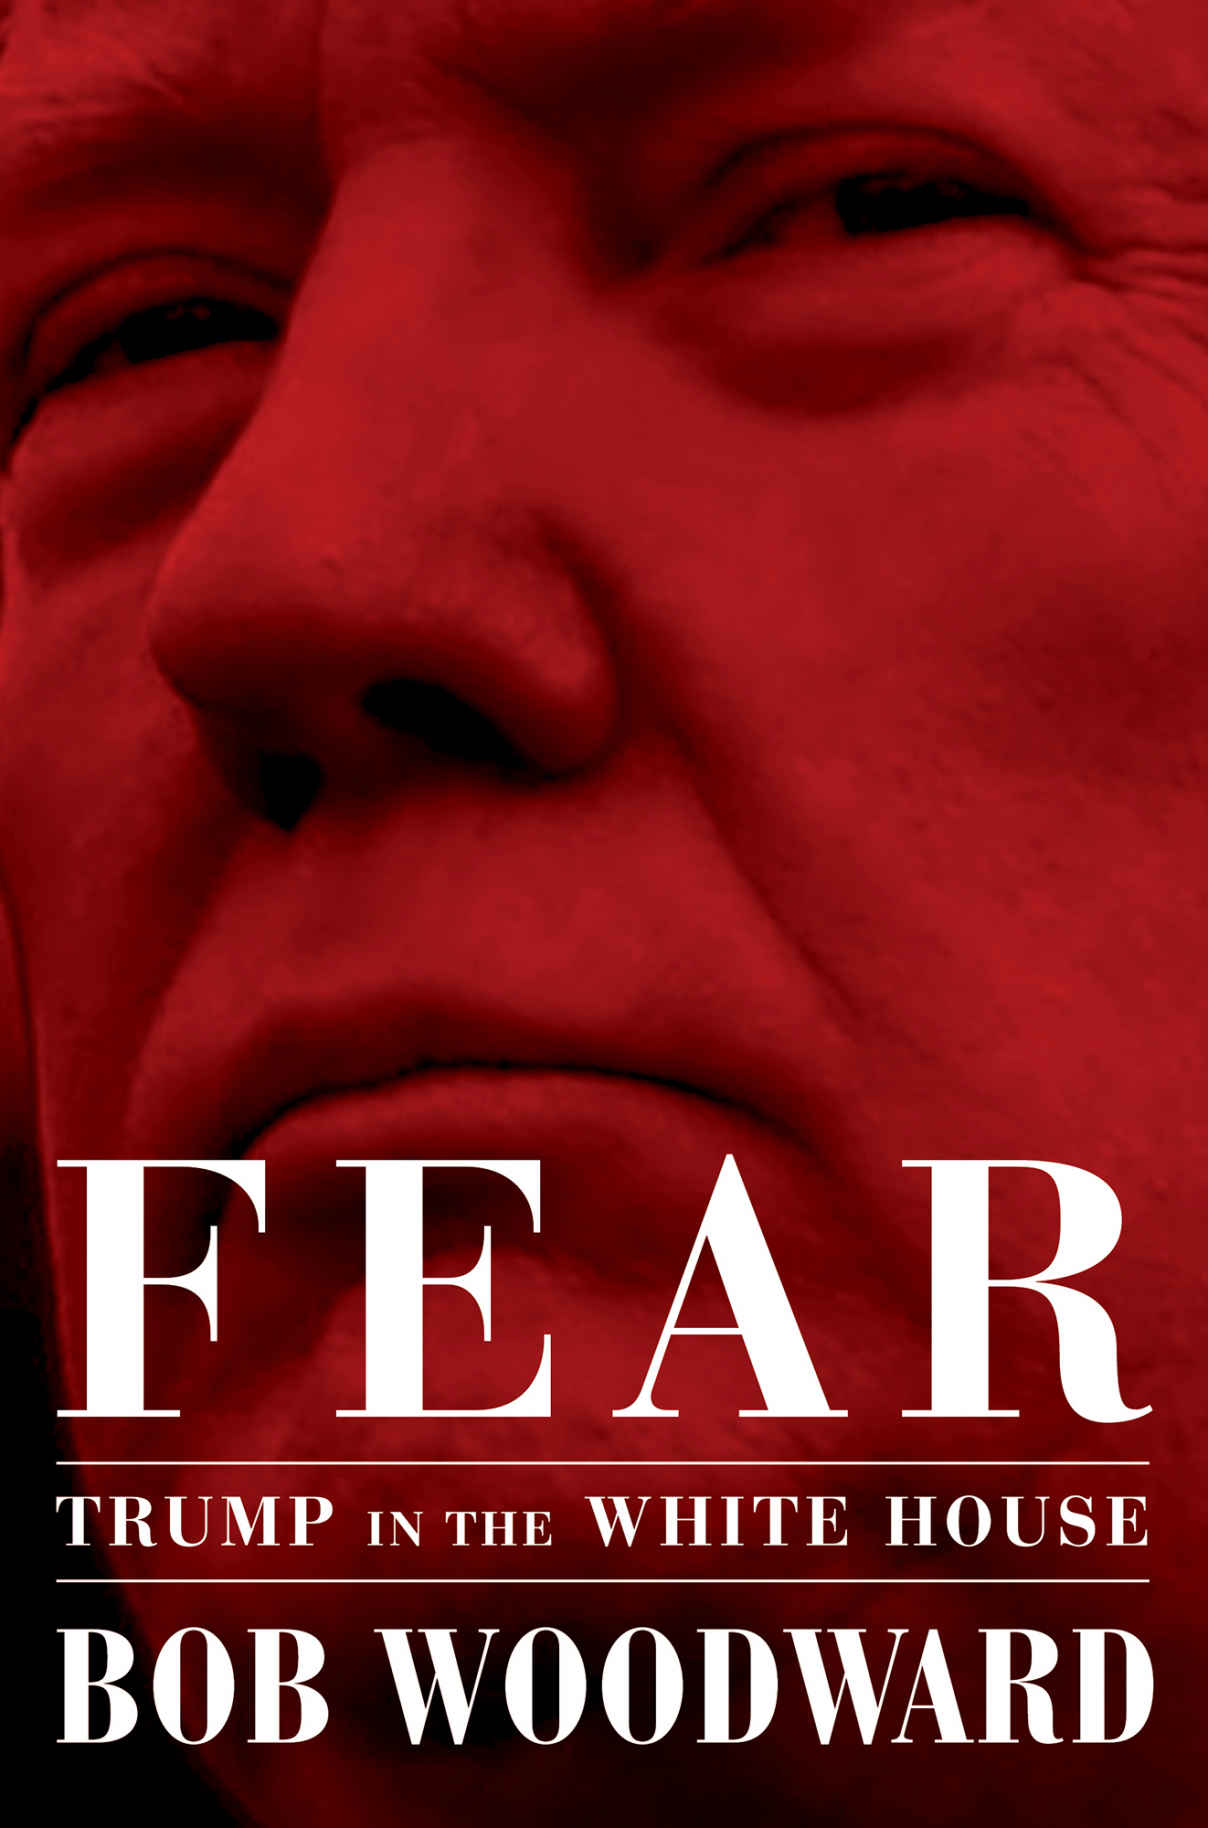 Fear: Trump in the White House - Bob Woodward [kindle] [mobi]